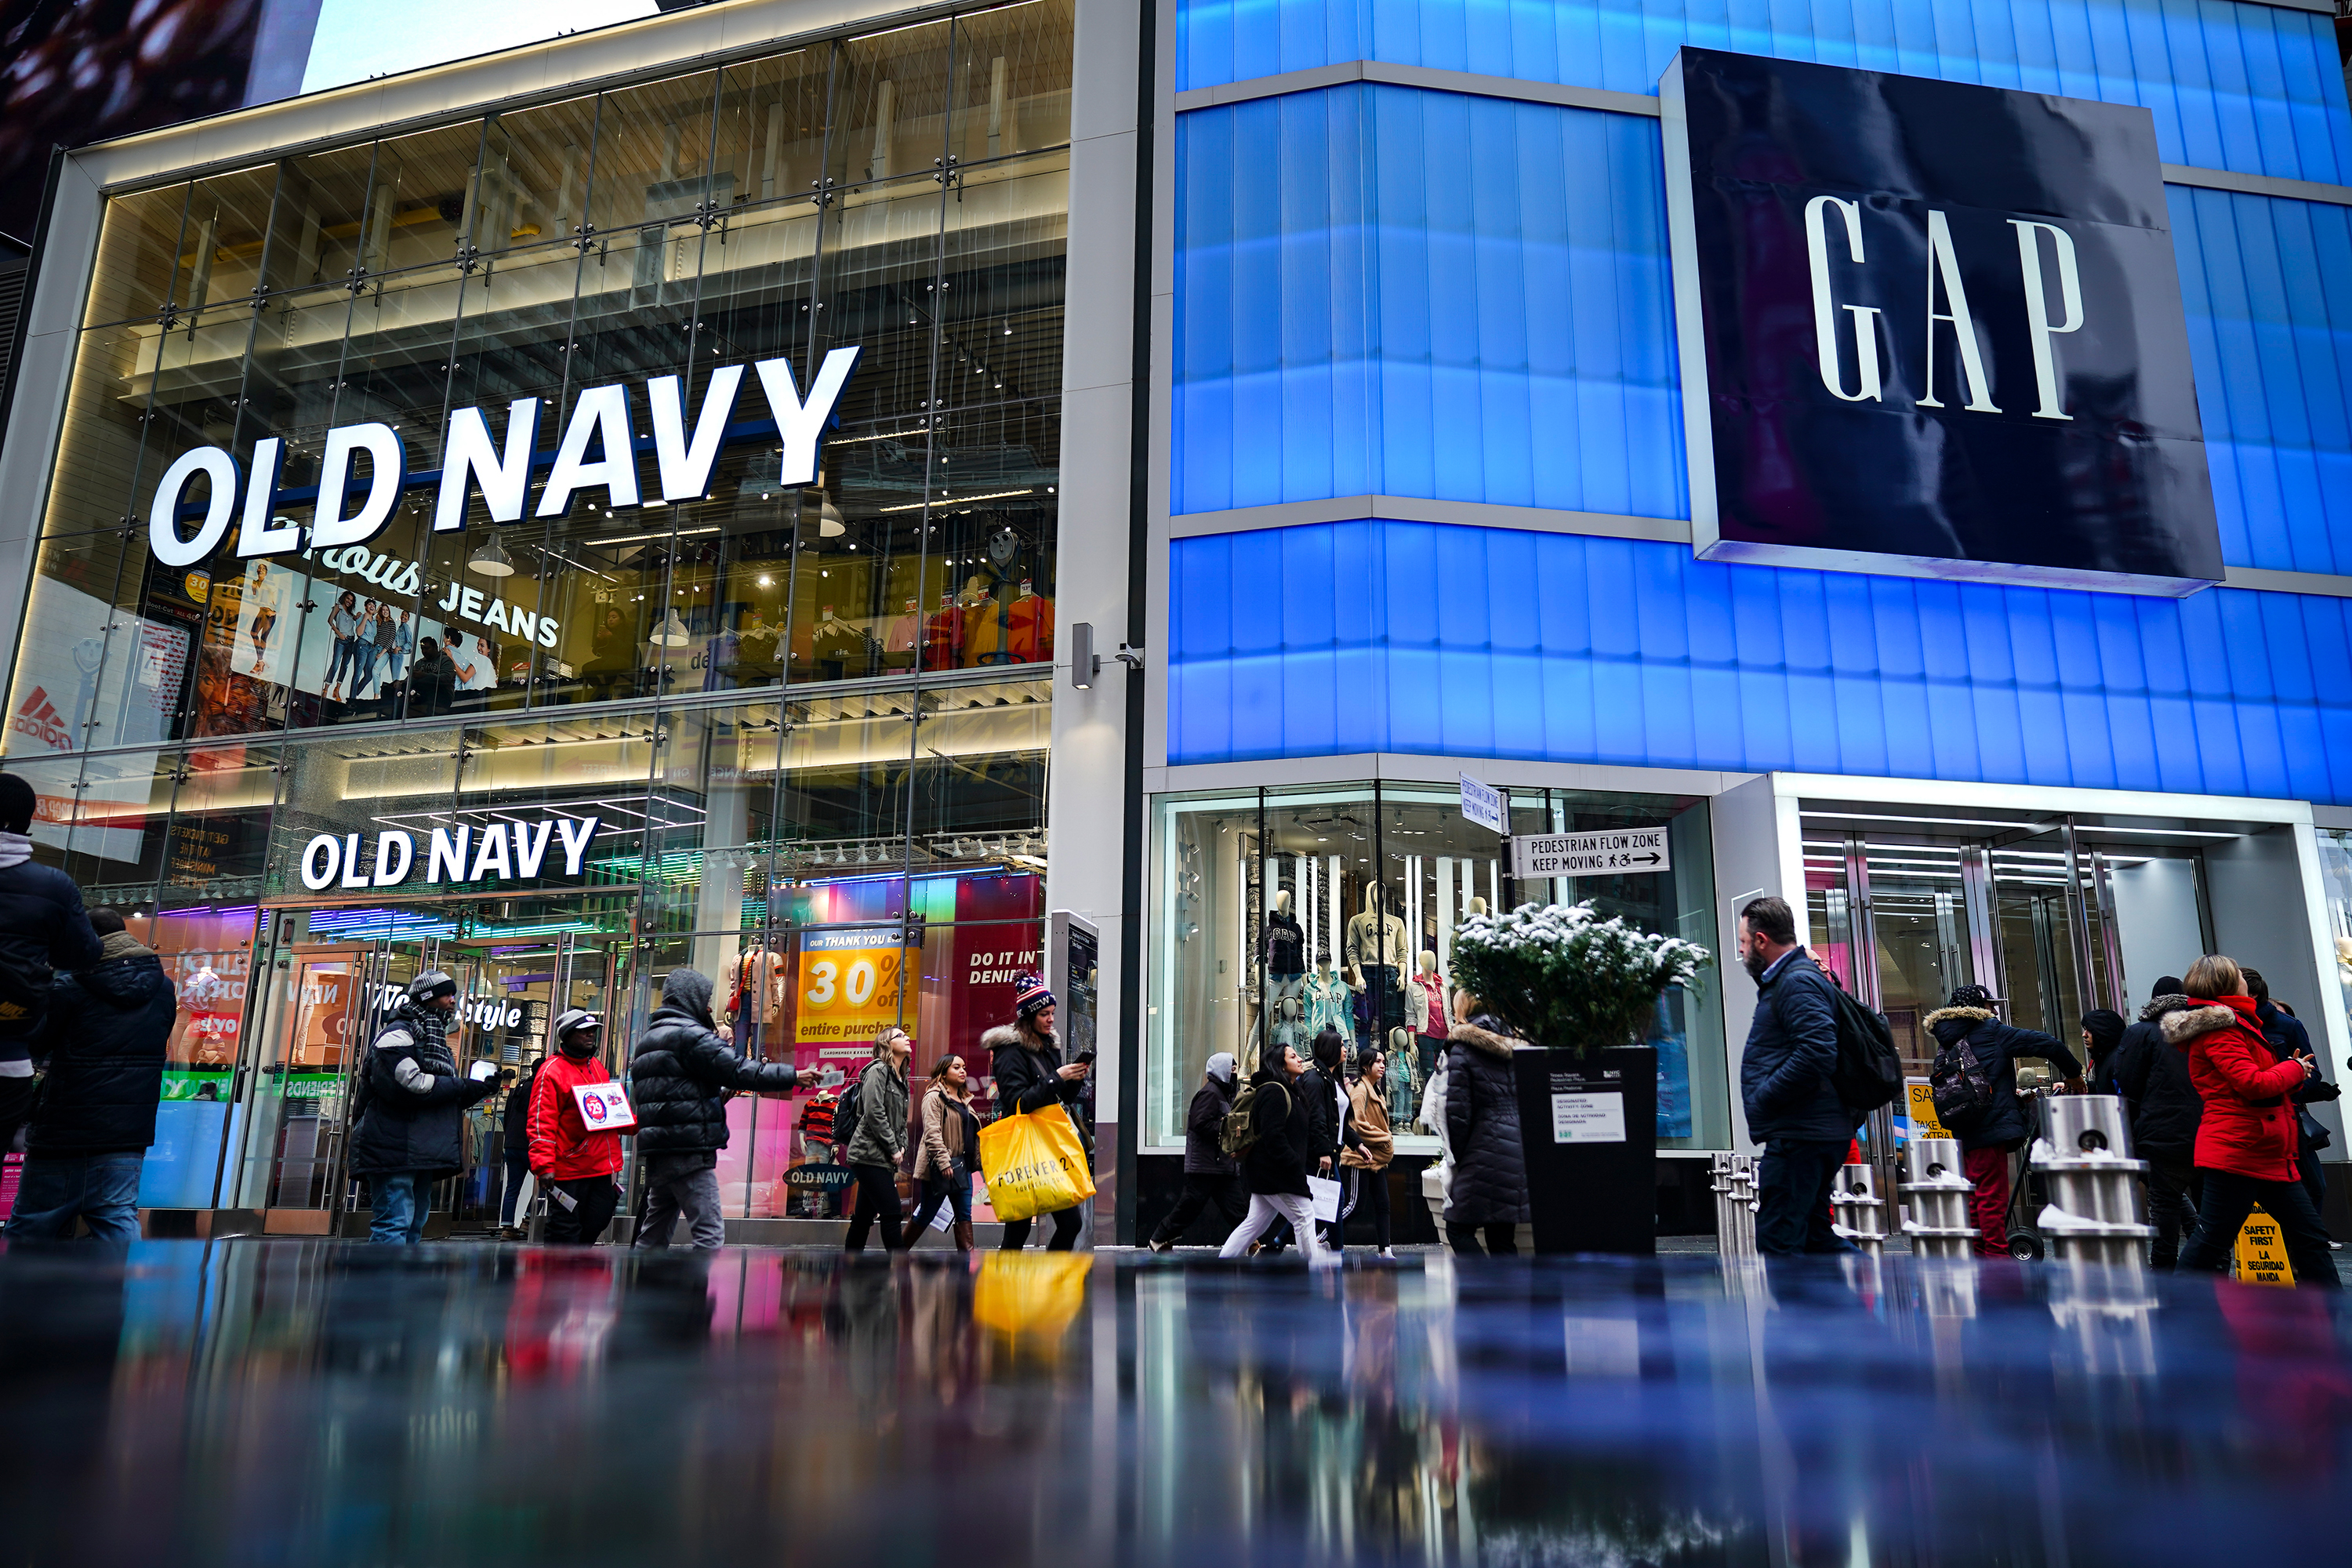 Gap won't spin off its Old Navy brand